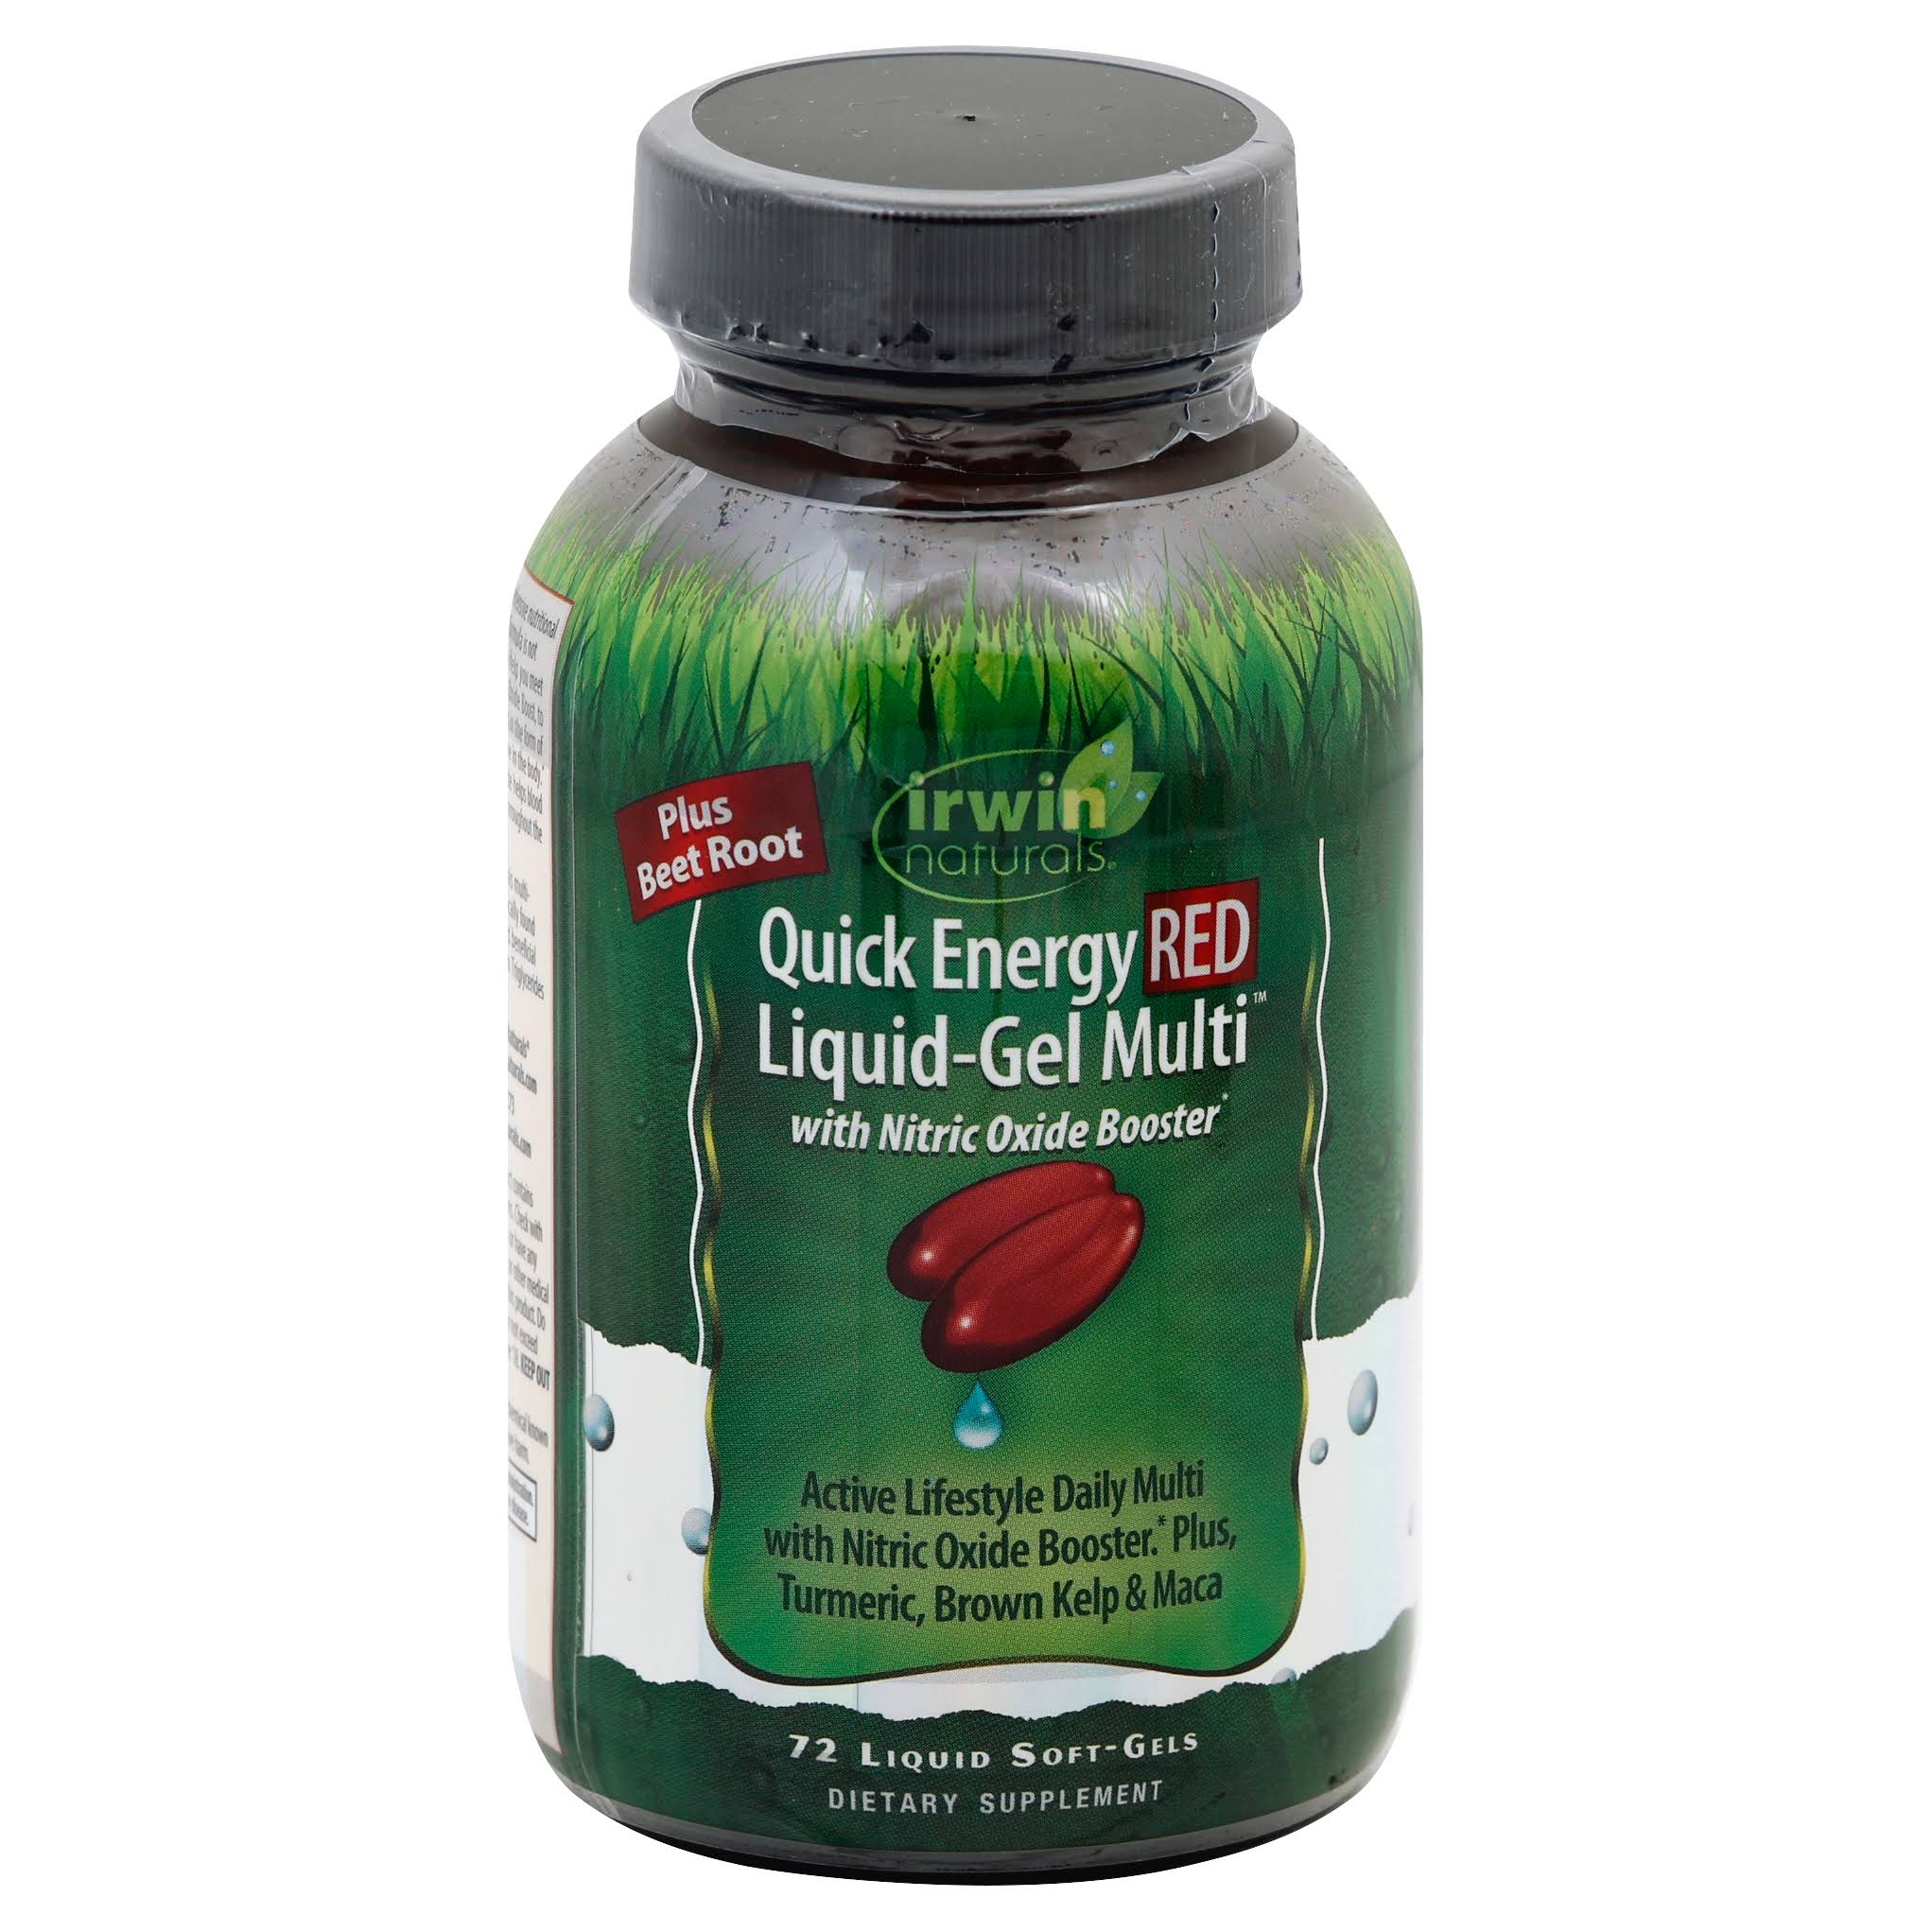 Irwin Naturals Quick Energy Red Liquid GEL Multi Dietary Supplement - 72ct